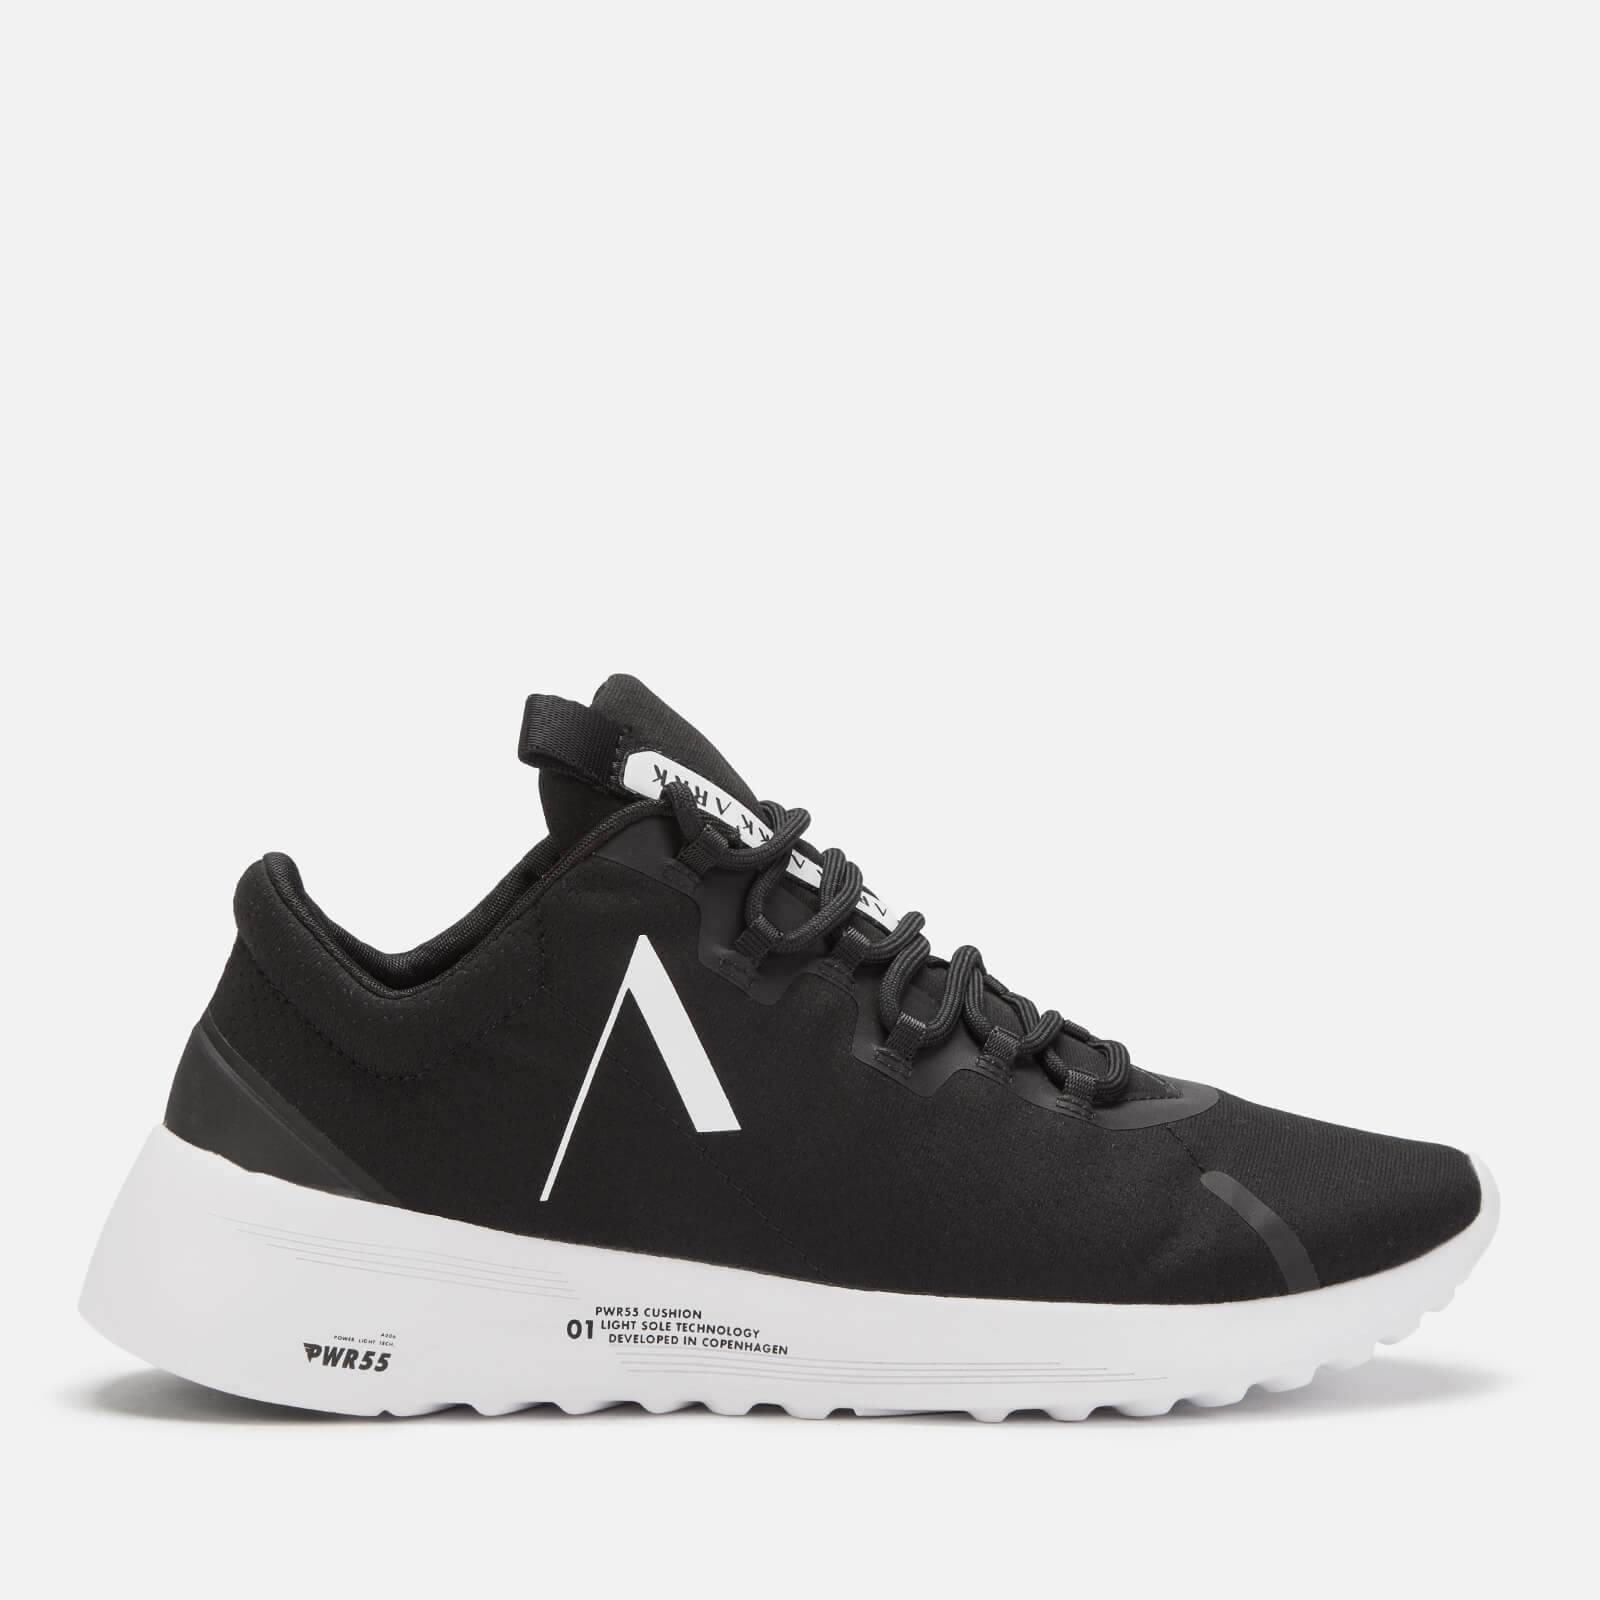 ARKK Copenhagen Men's Axionn Mesh PWR55 Trainers - Black/White - EU 41/UK 7 - Black